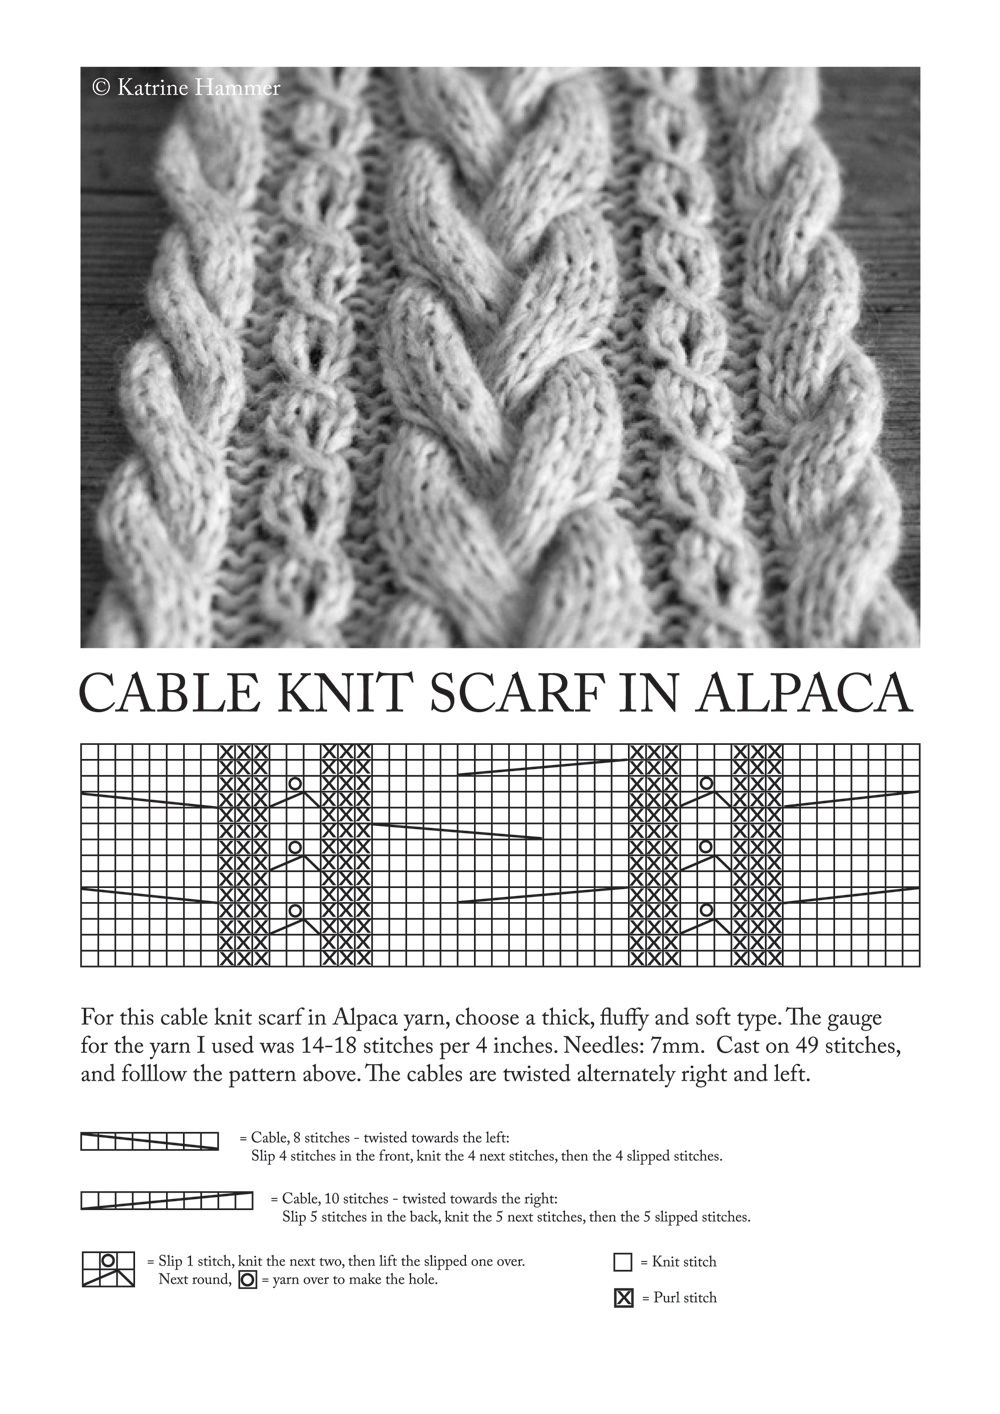 Cable Knit Scarf Pattern : KnittyBliss: March 2011